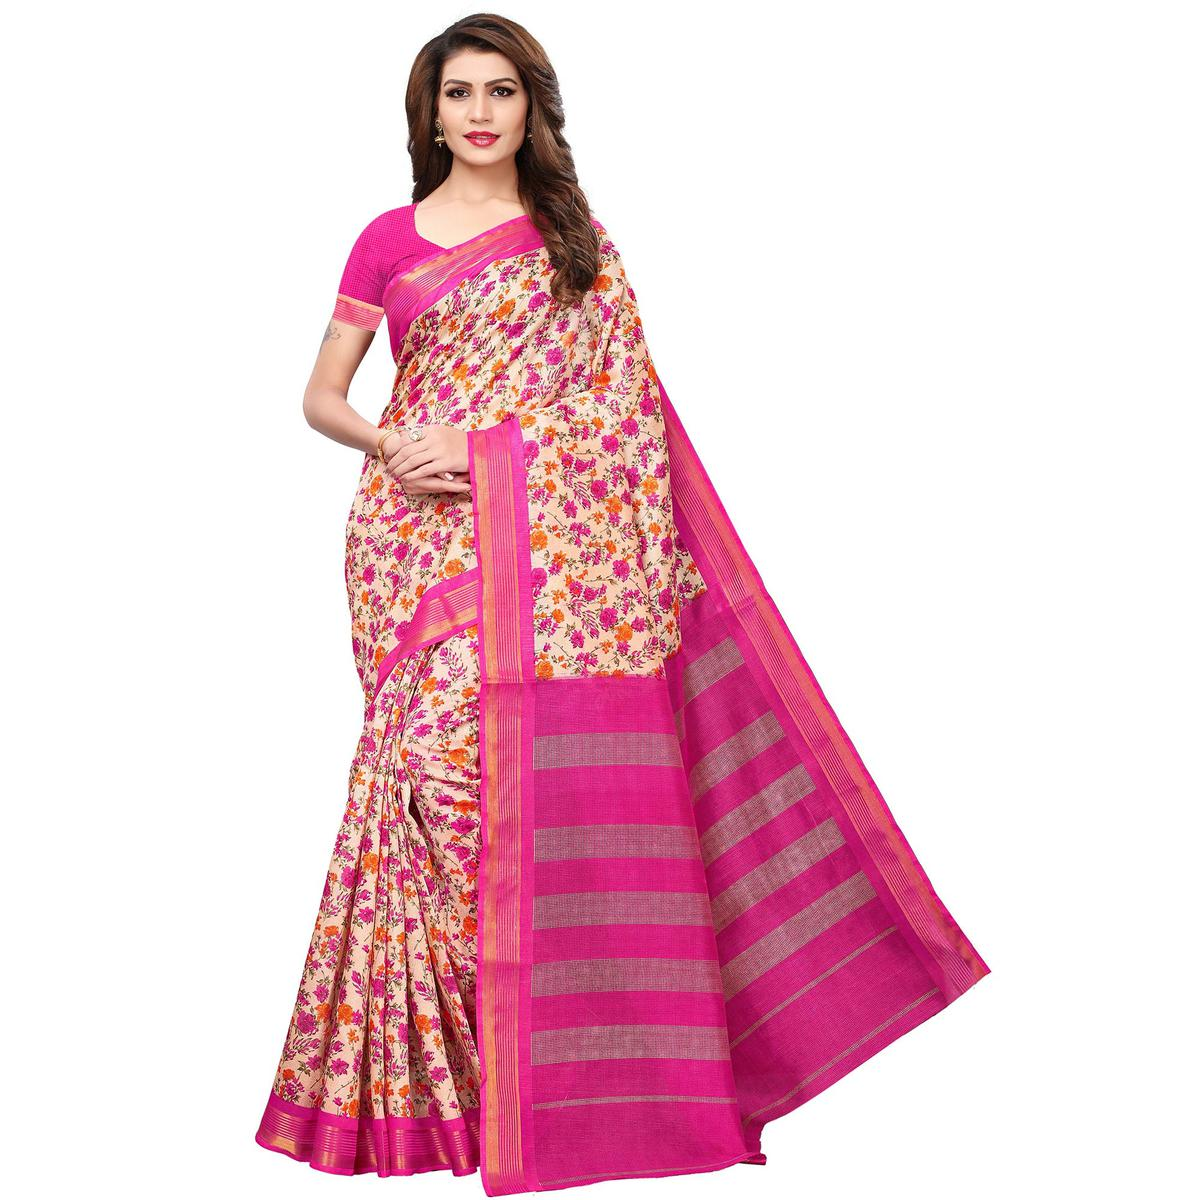 Refreshing Cream-Pink Colored Casual Printed Bhagalpuri Silk Saree